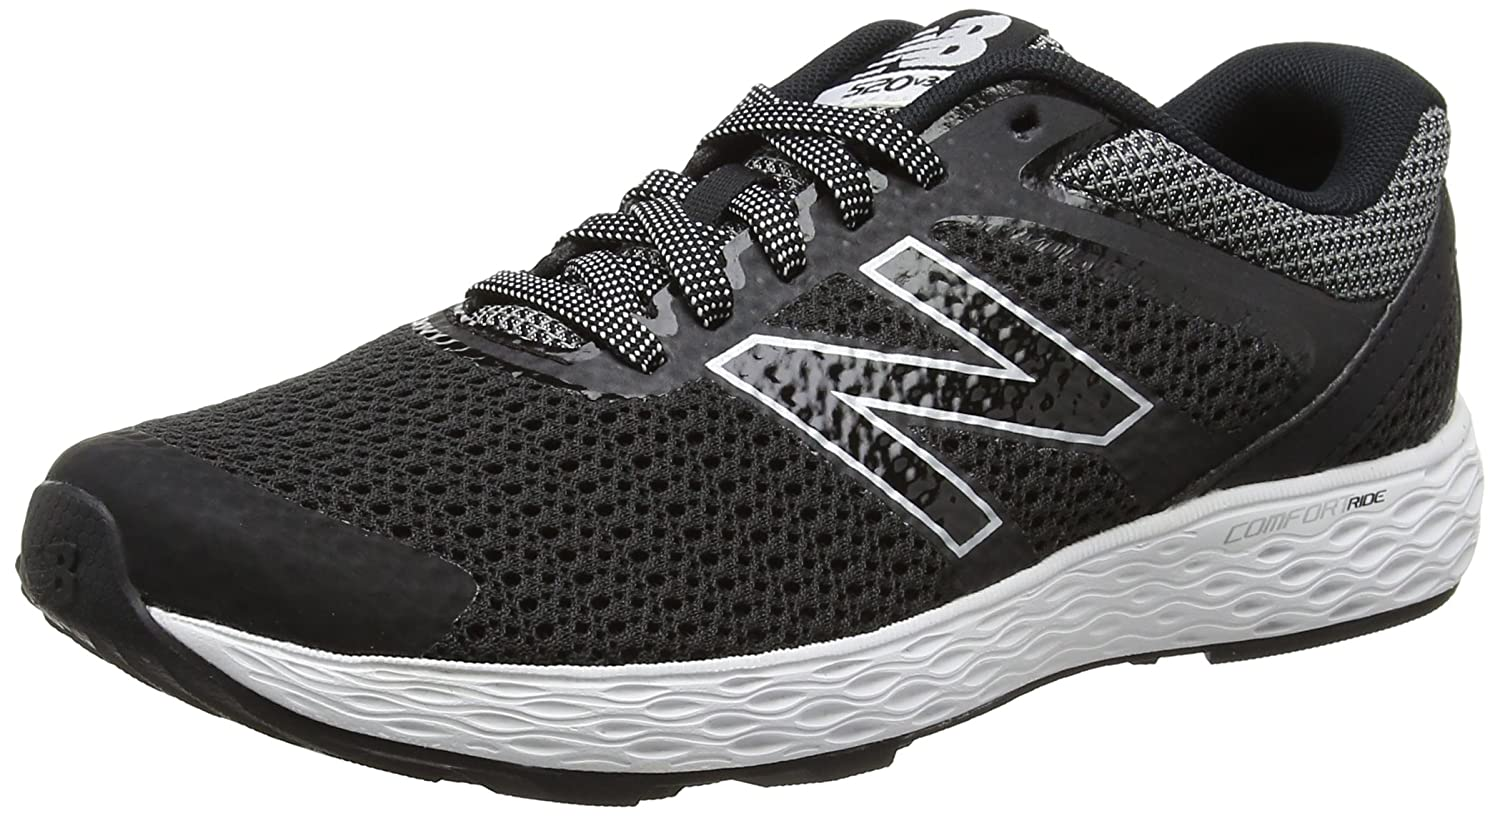 New Balance Women's 520v3 Running Shoe B01FSJBK92 12 B(M) US|Black/Gunmetal/White